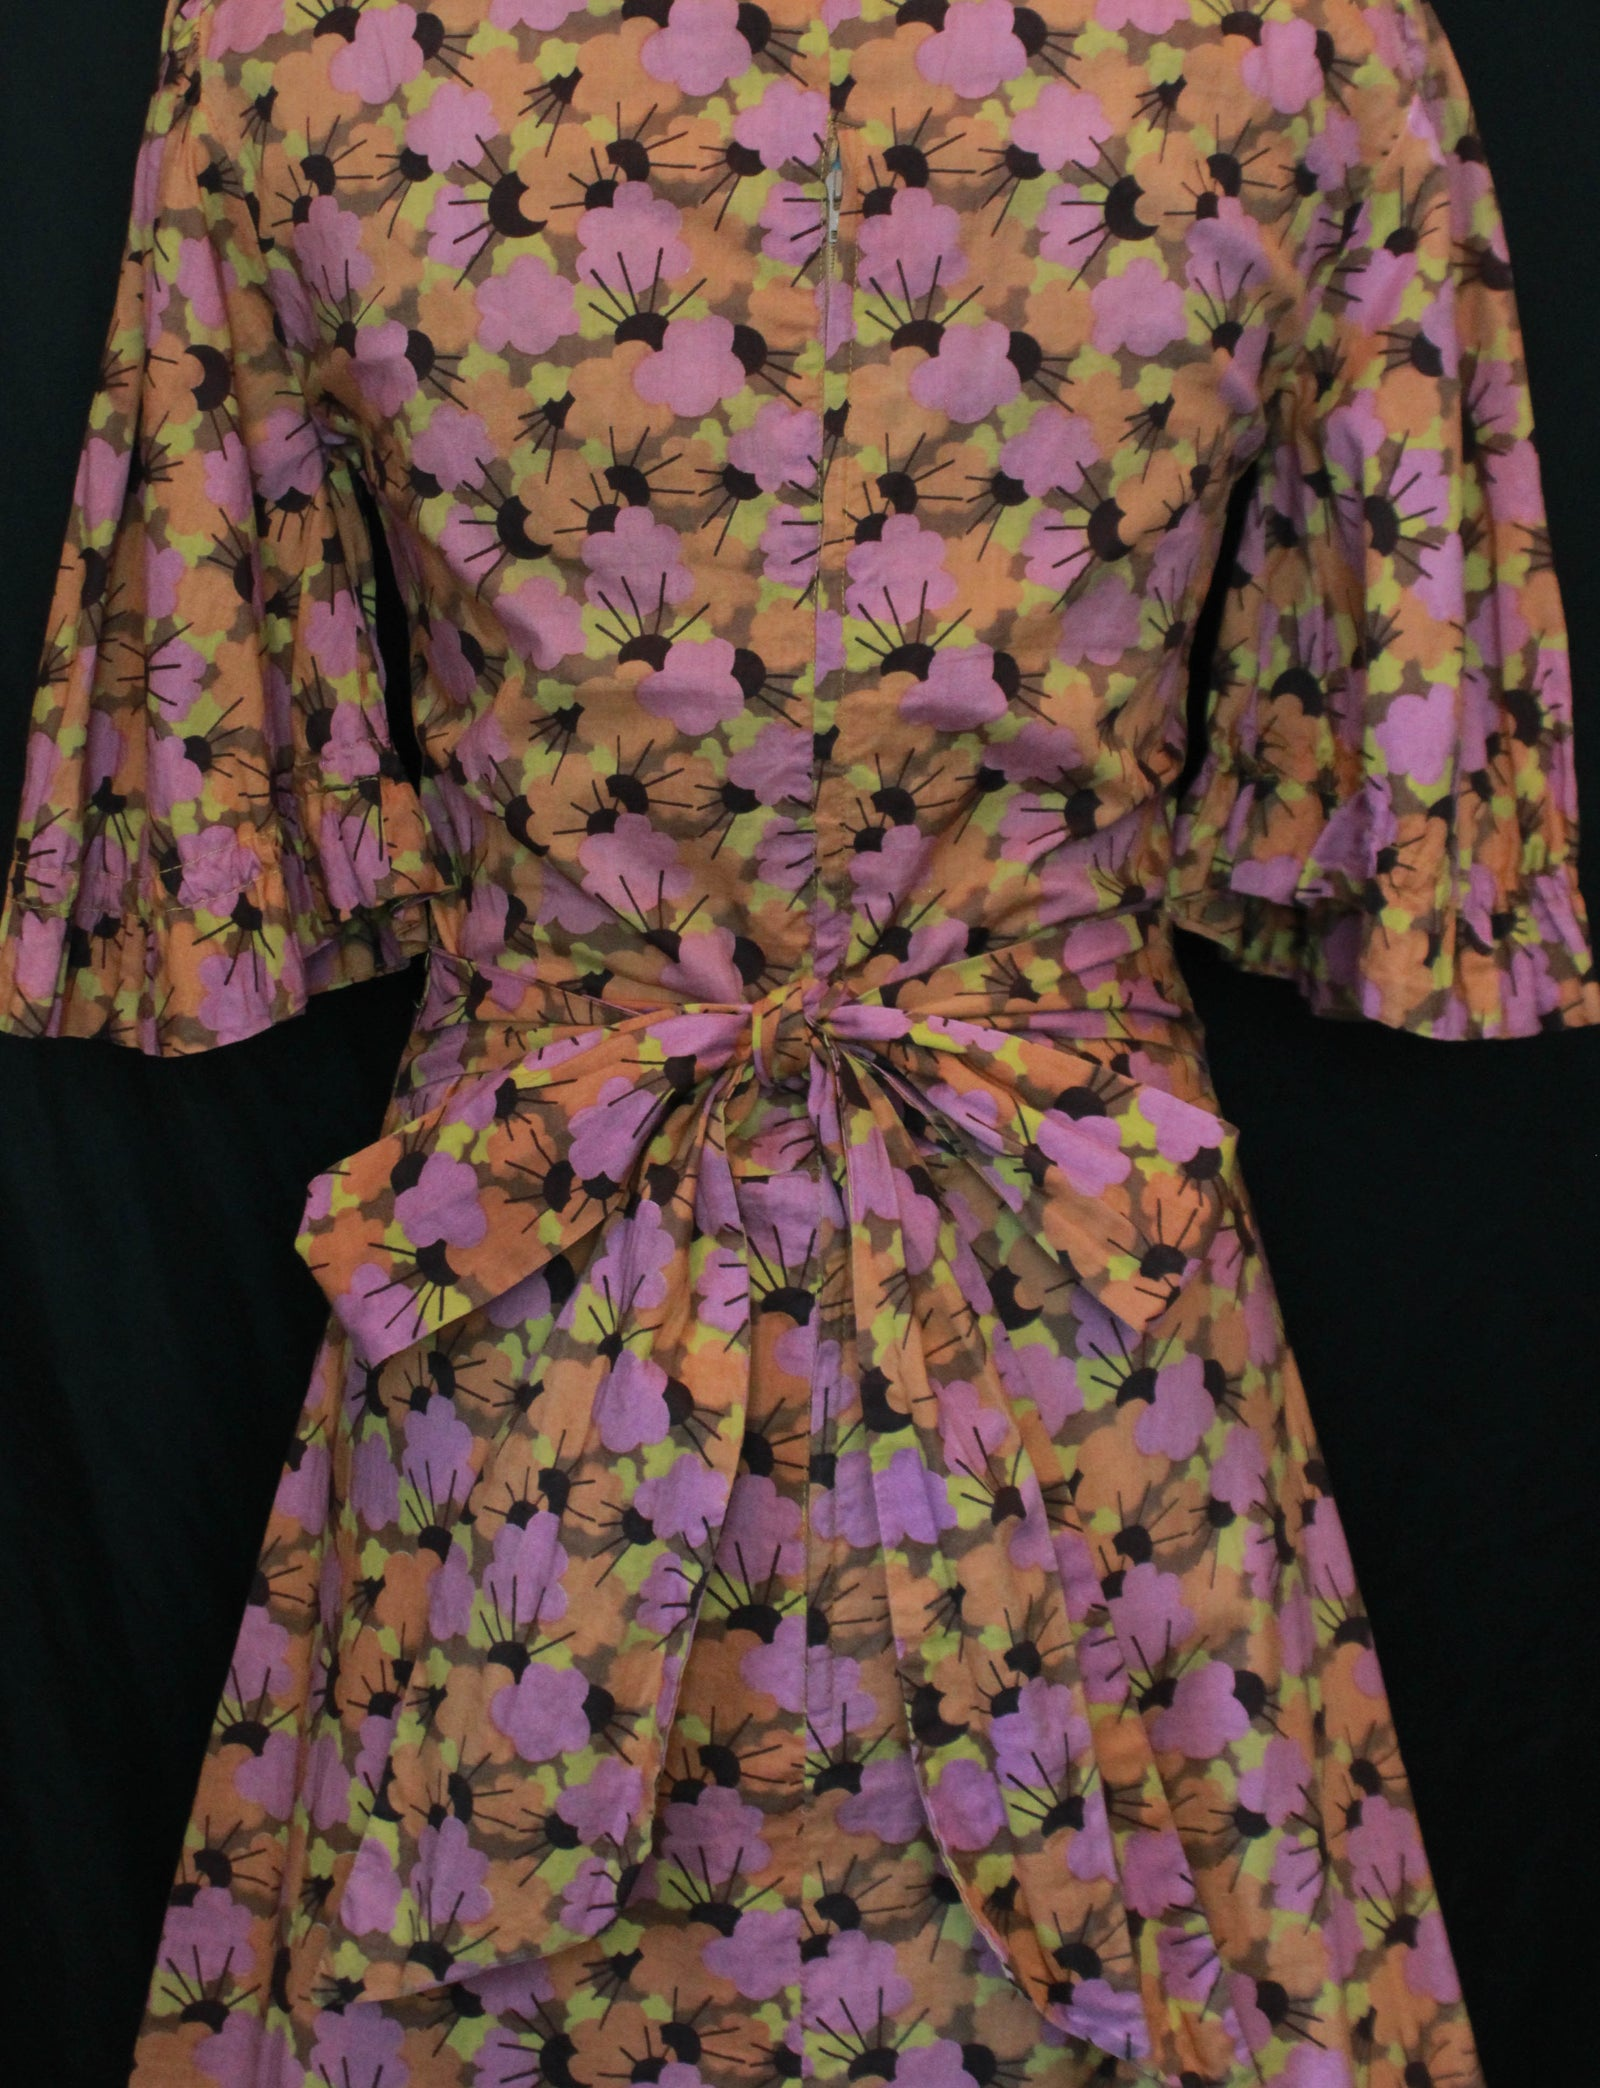 Women's Vintage 60's Biba Flower Pattern Dress - Small/Medium